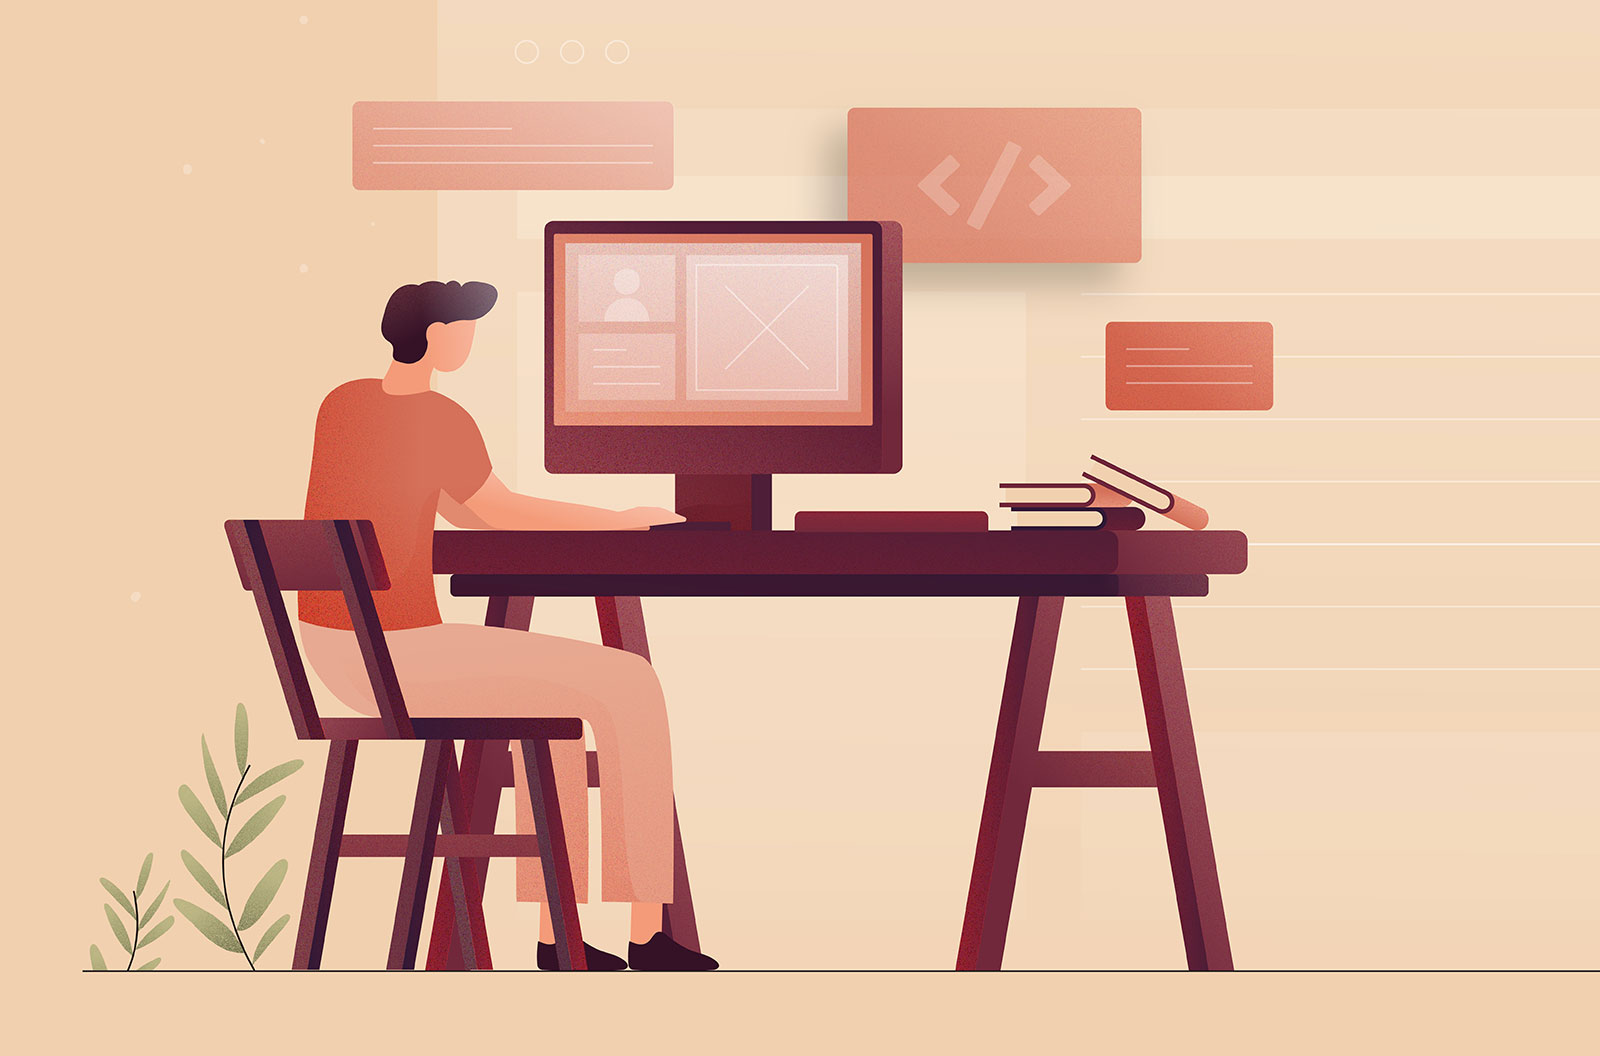 Web design concept vector illustration of person sitting at a desk working